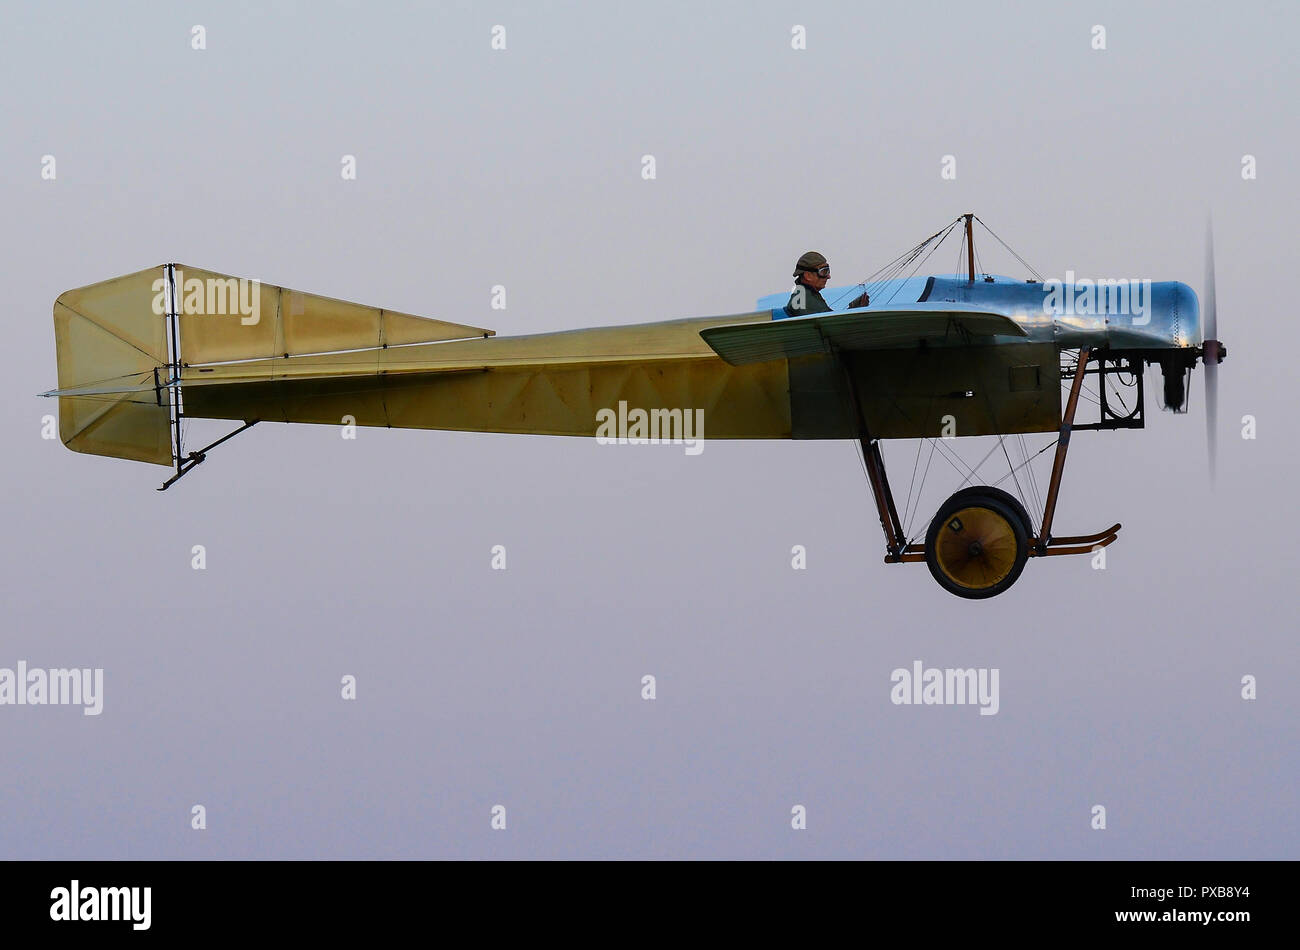 1912-blackburn-monoplane-type-d-the-oldest-airworthy-aircraft-of-british-origin-anywhere-in-the-world-vintage-plane-from-early-days-of-manned-flight-PXB8Y4.jpg